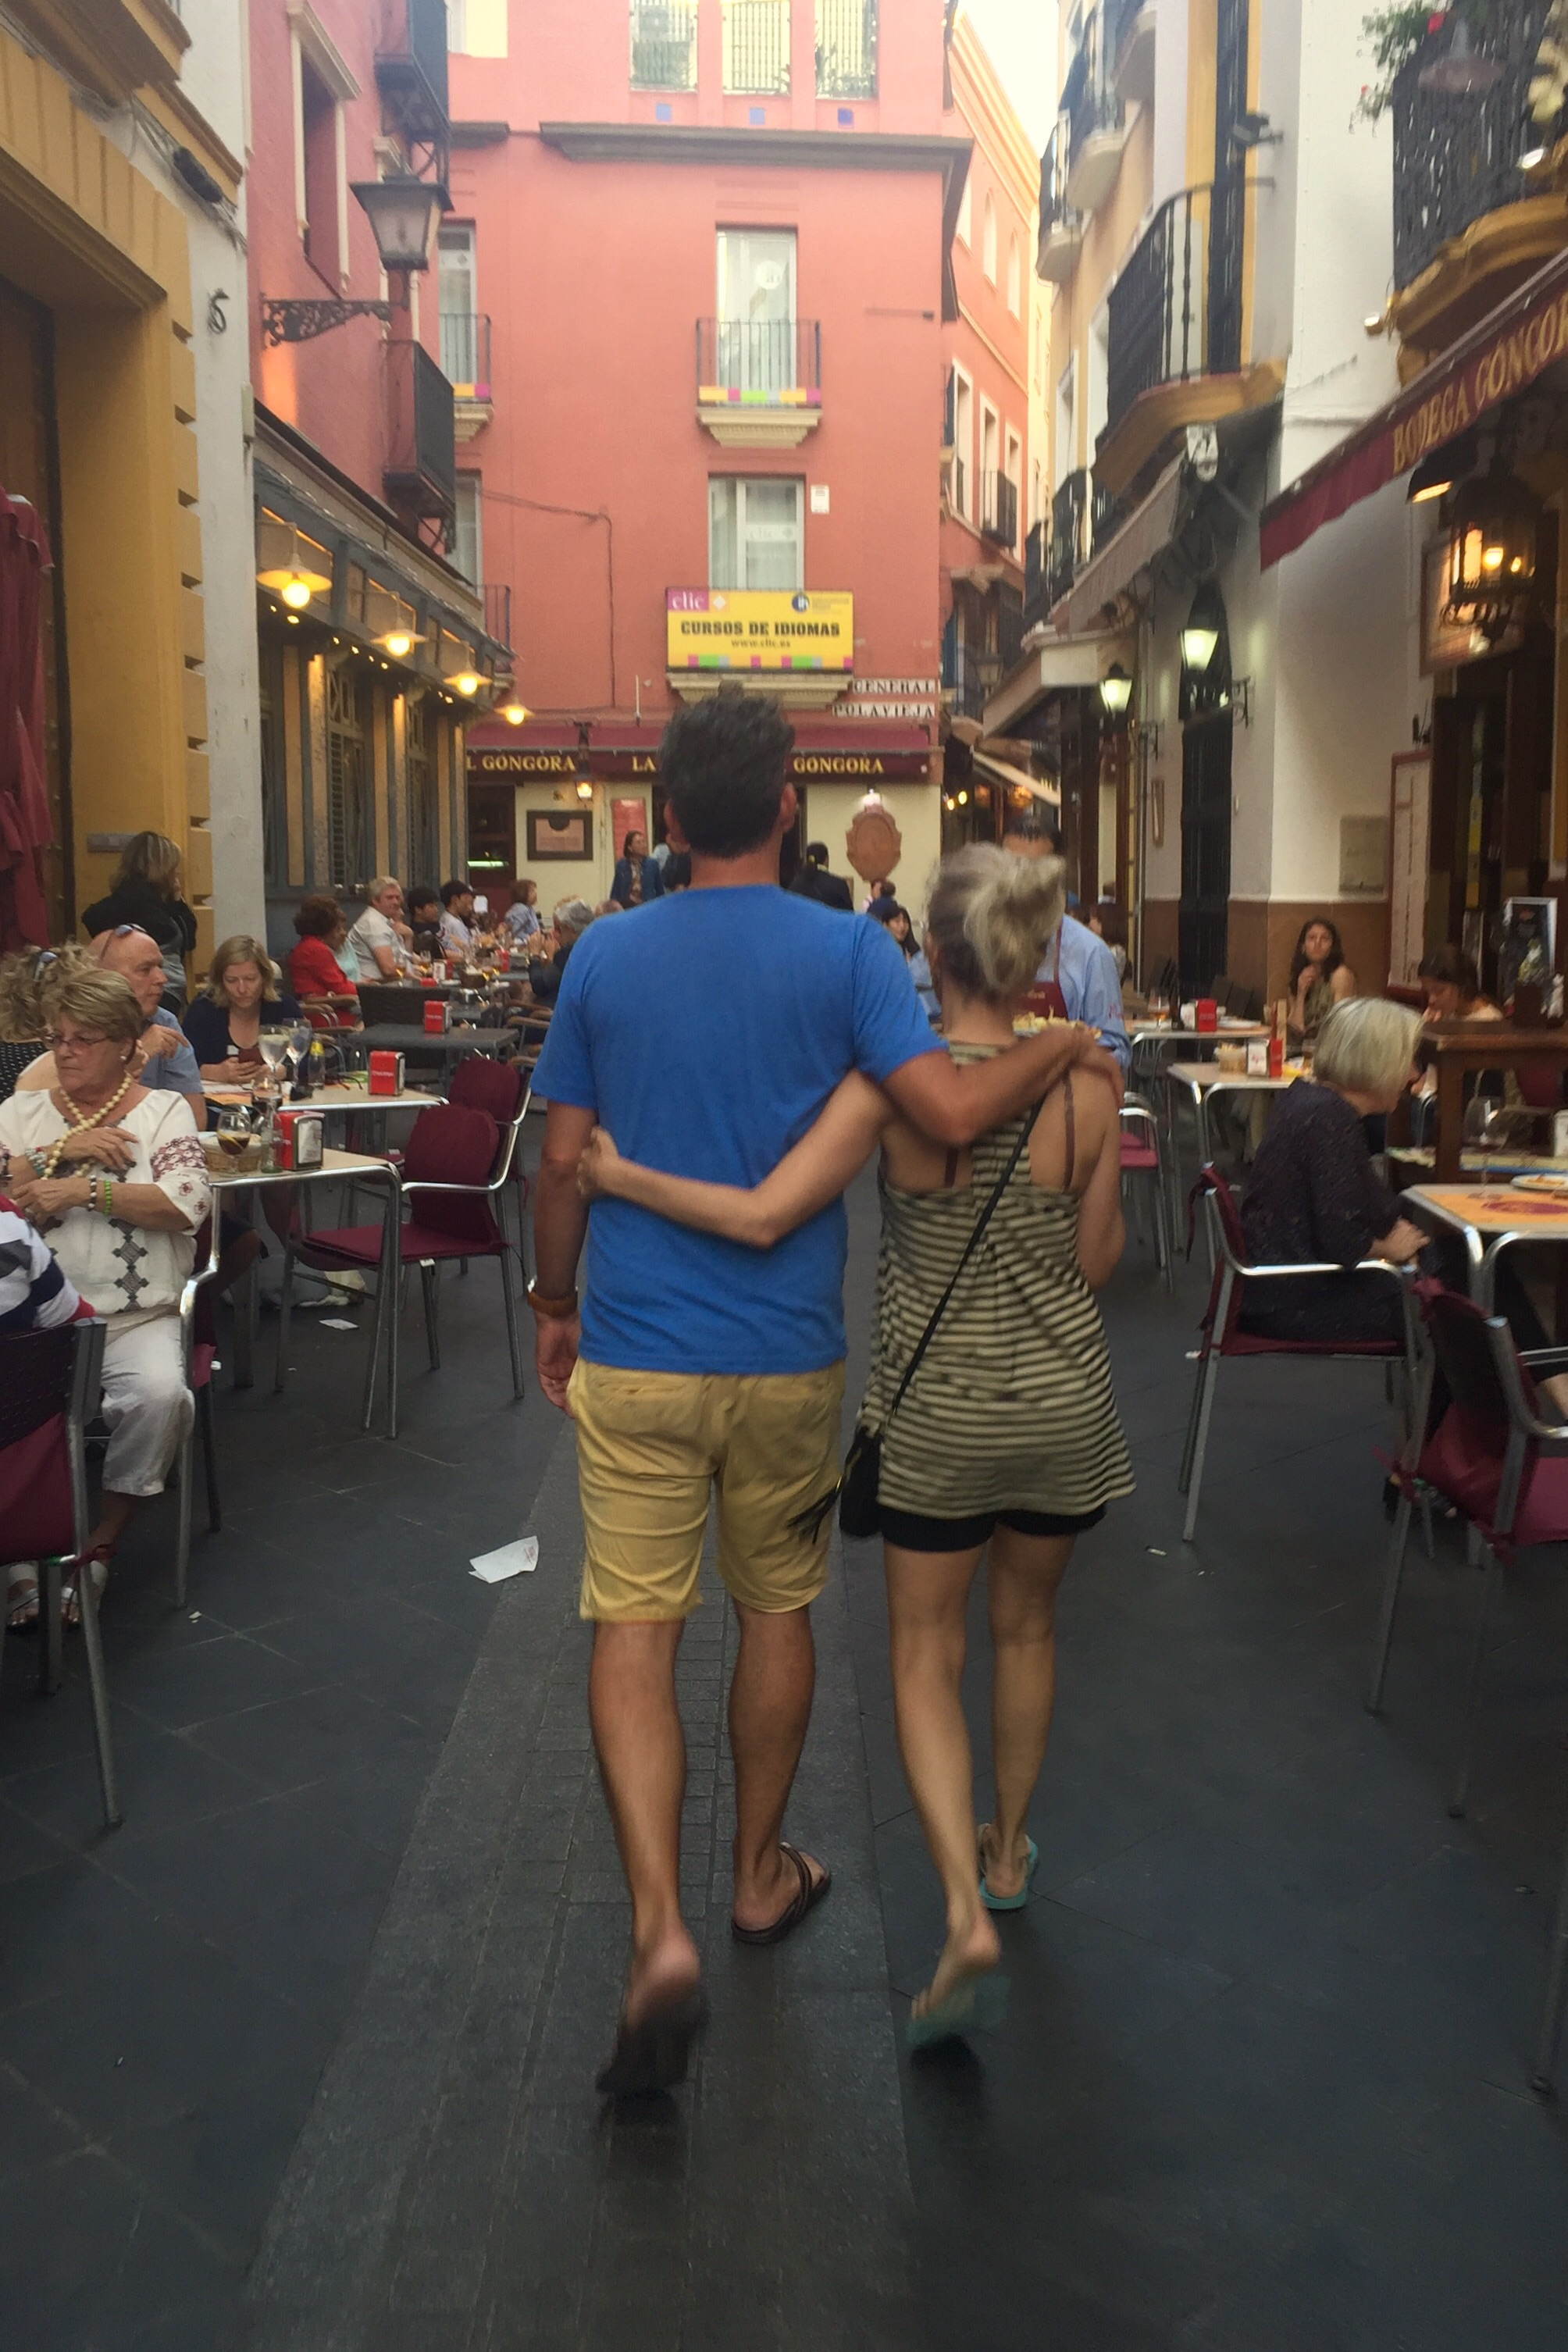 Cute couple heading to tapas alley